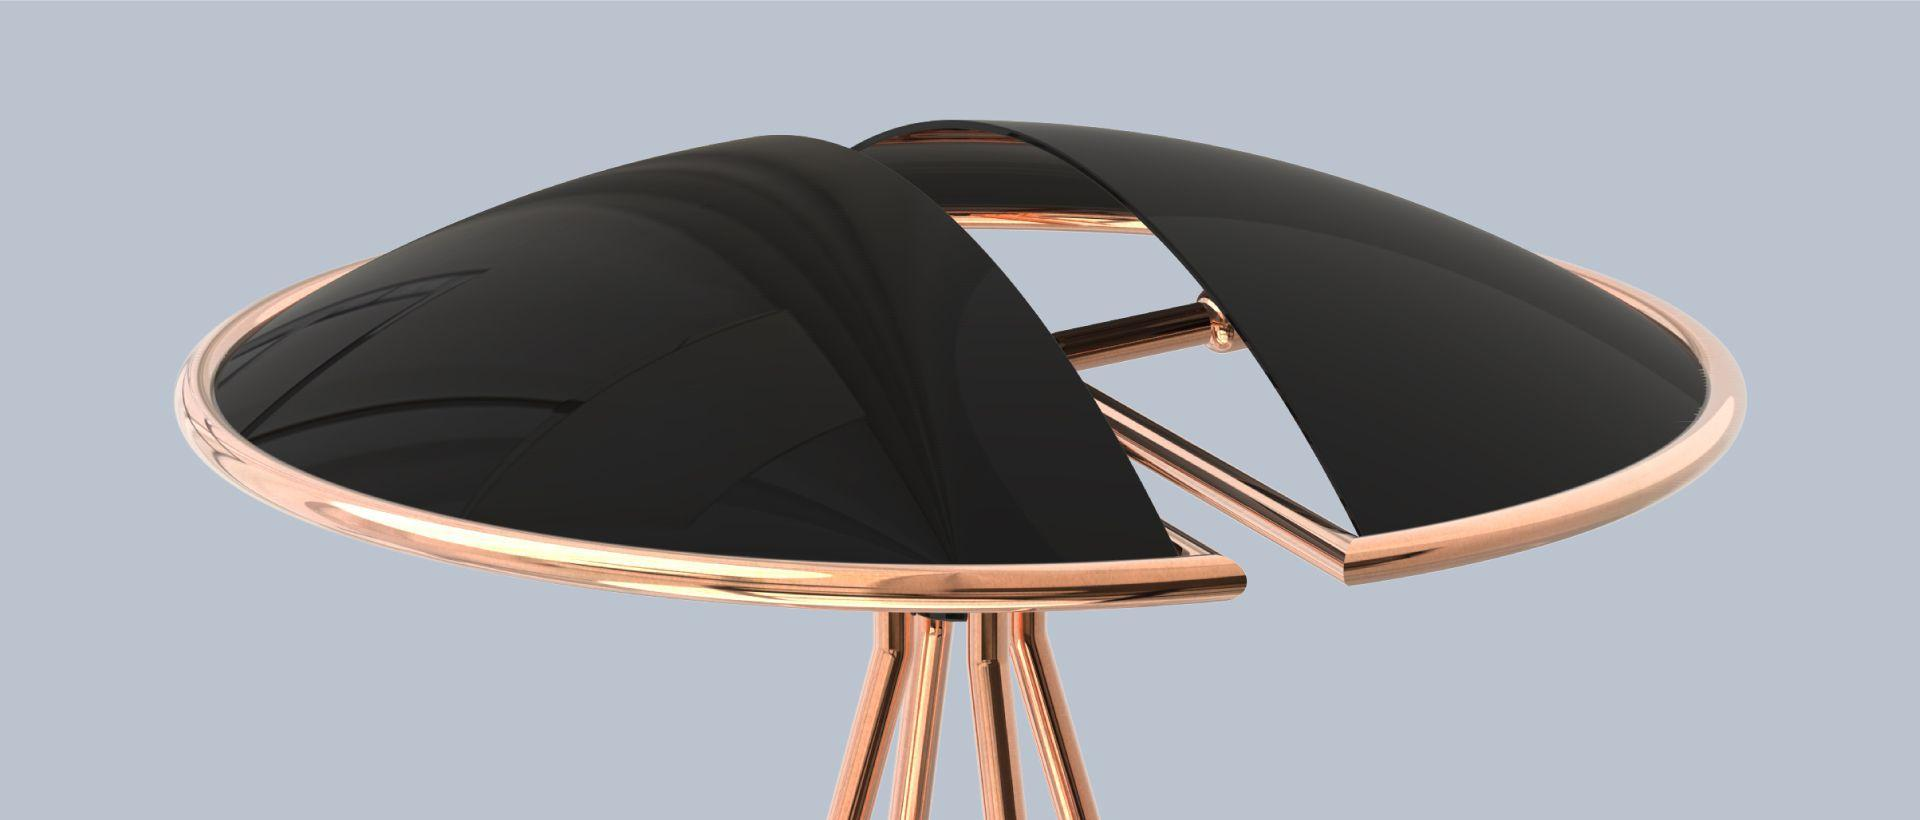 About Beetle Table Lamp